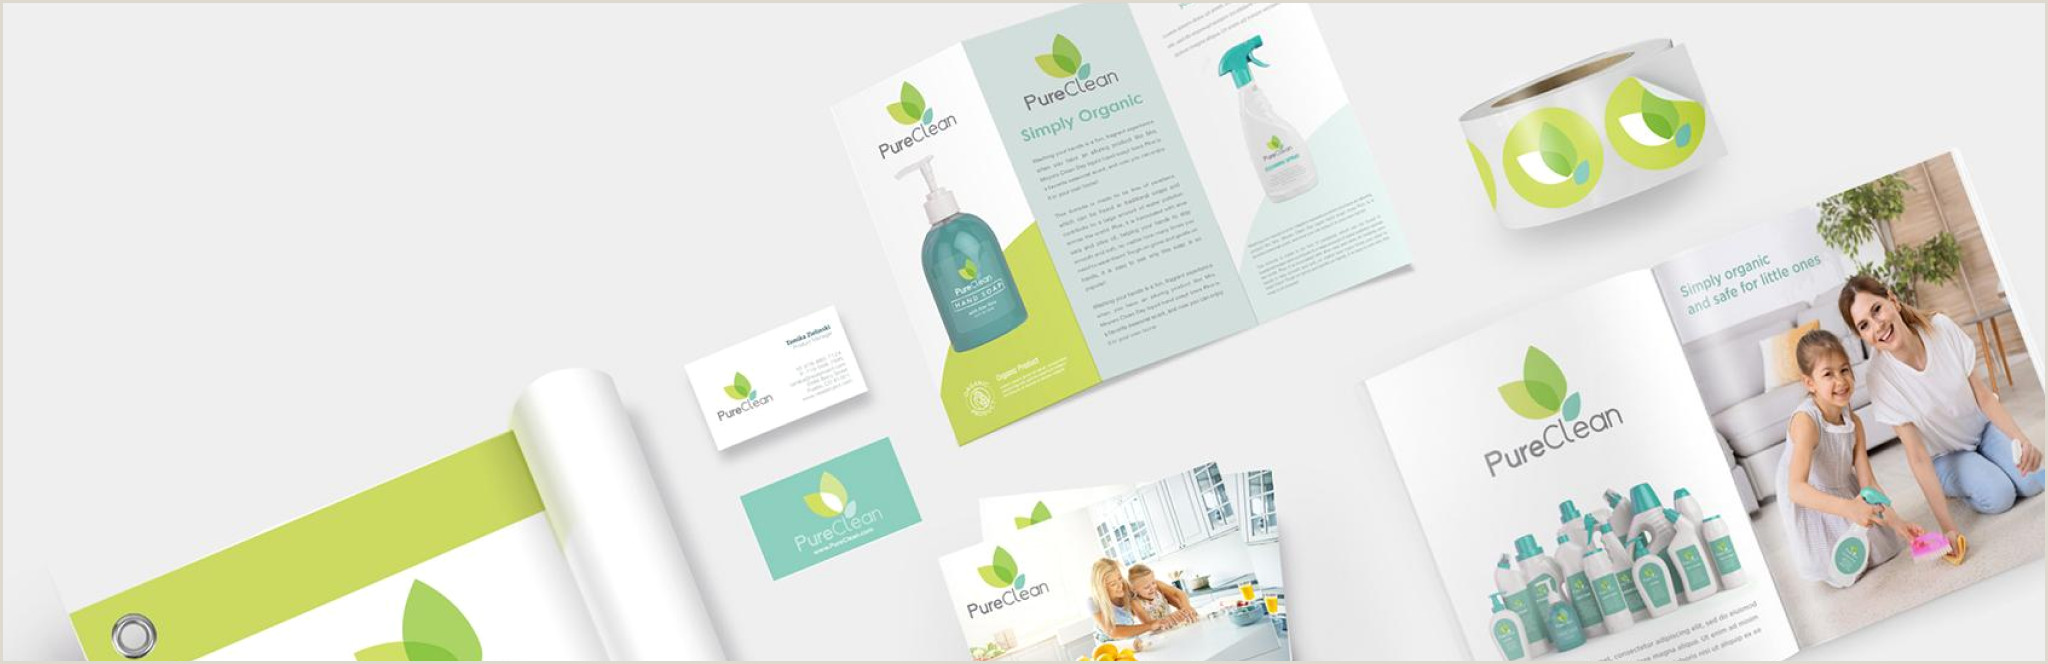 Best Cheap Business Cards Printplace High Quality Line Printing Services